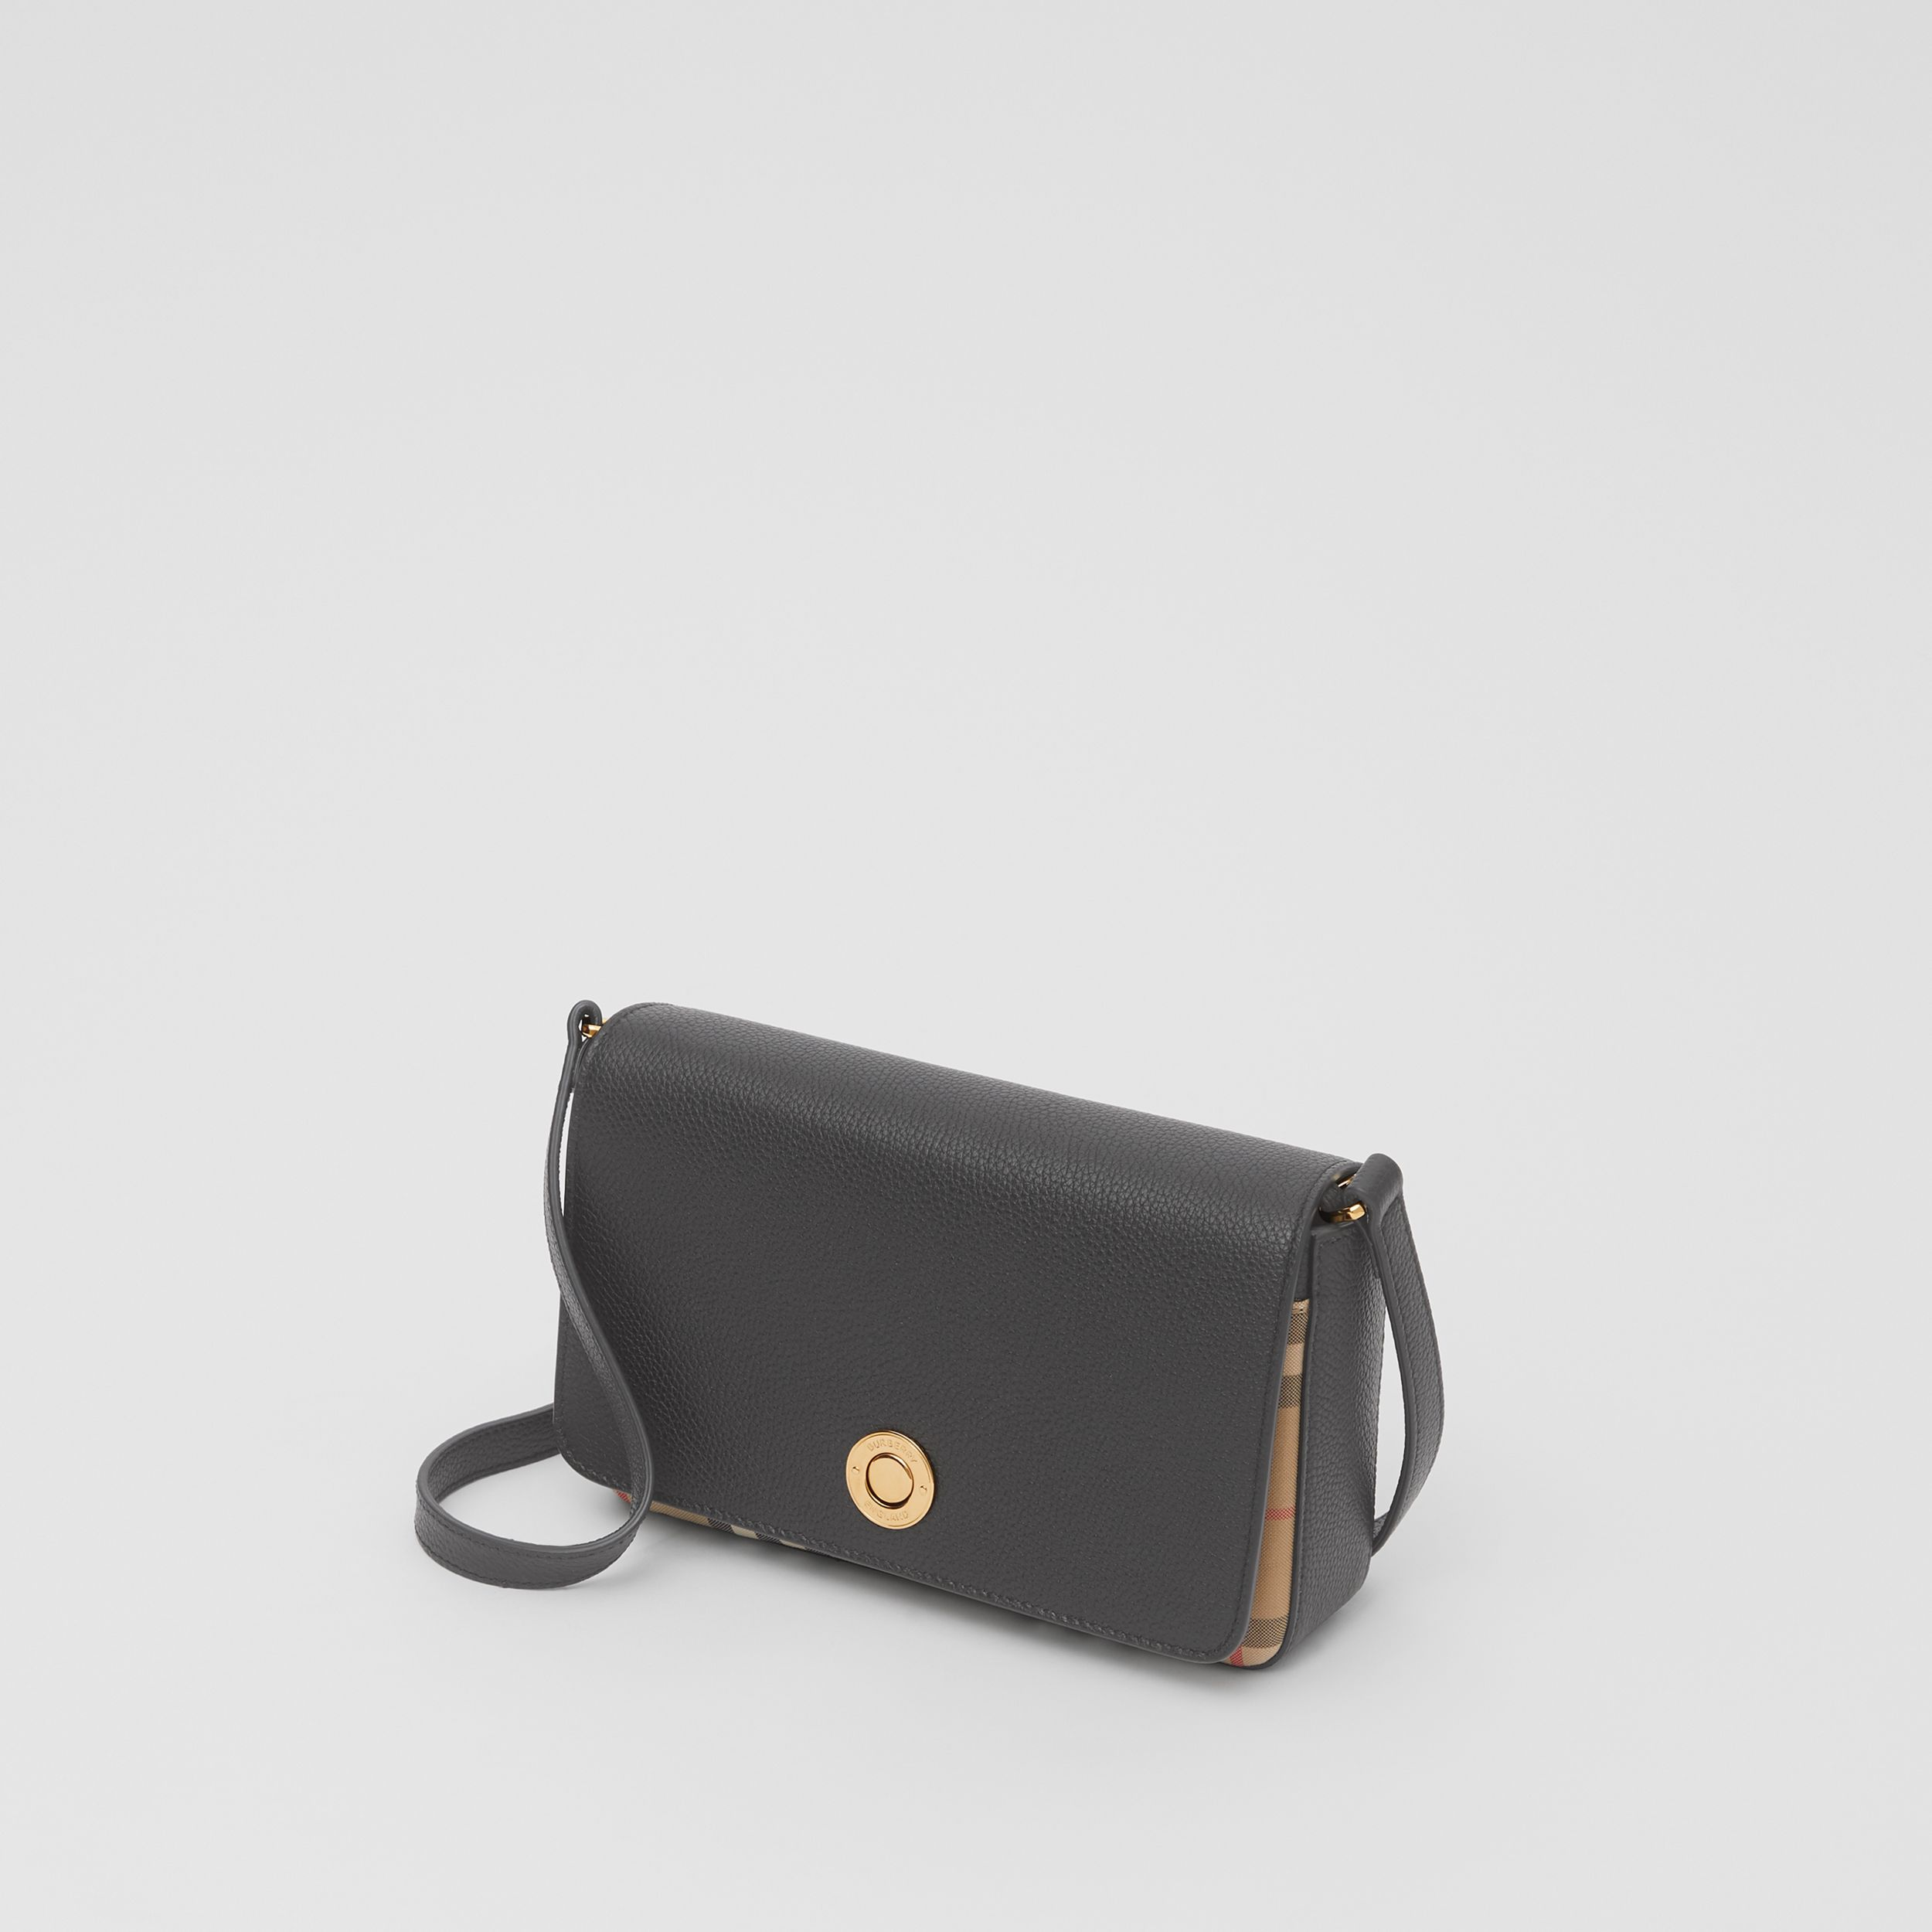 Small Leather and Vintage Check Crossbody Bag in Black - Women | Burberry Australia - 4